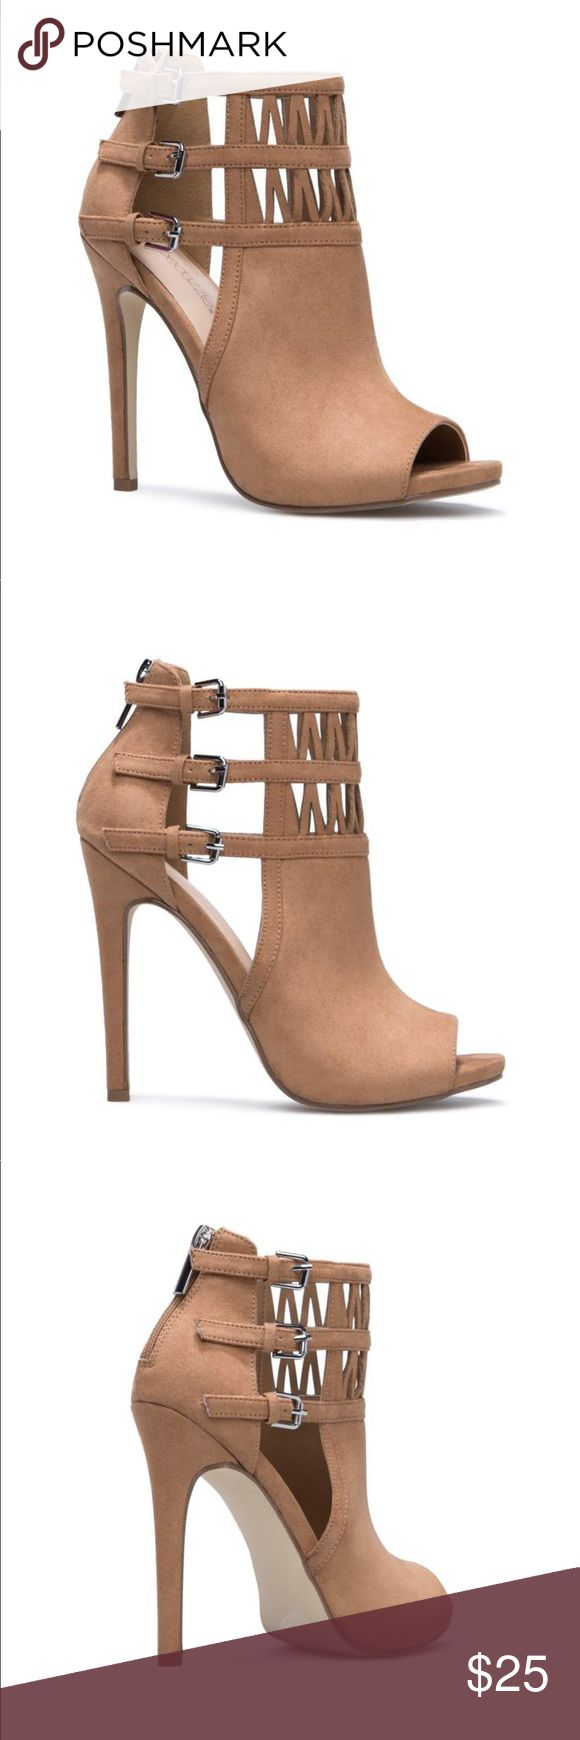 "Shoe Dazzle Heidi Camel Color Shoe Dazzle Heidi Pump Booties Color: Camel Size: 7.5 Feels like ""suede"" material Shoe Dazzle Shoes Heels"